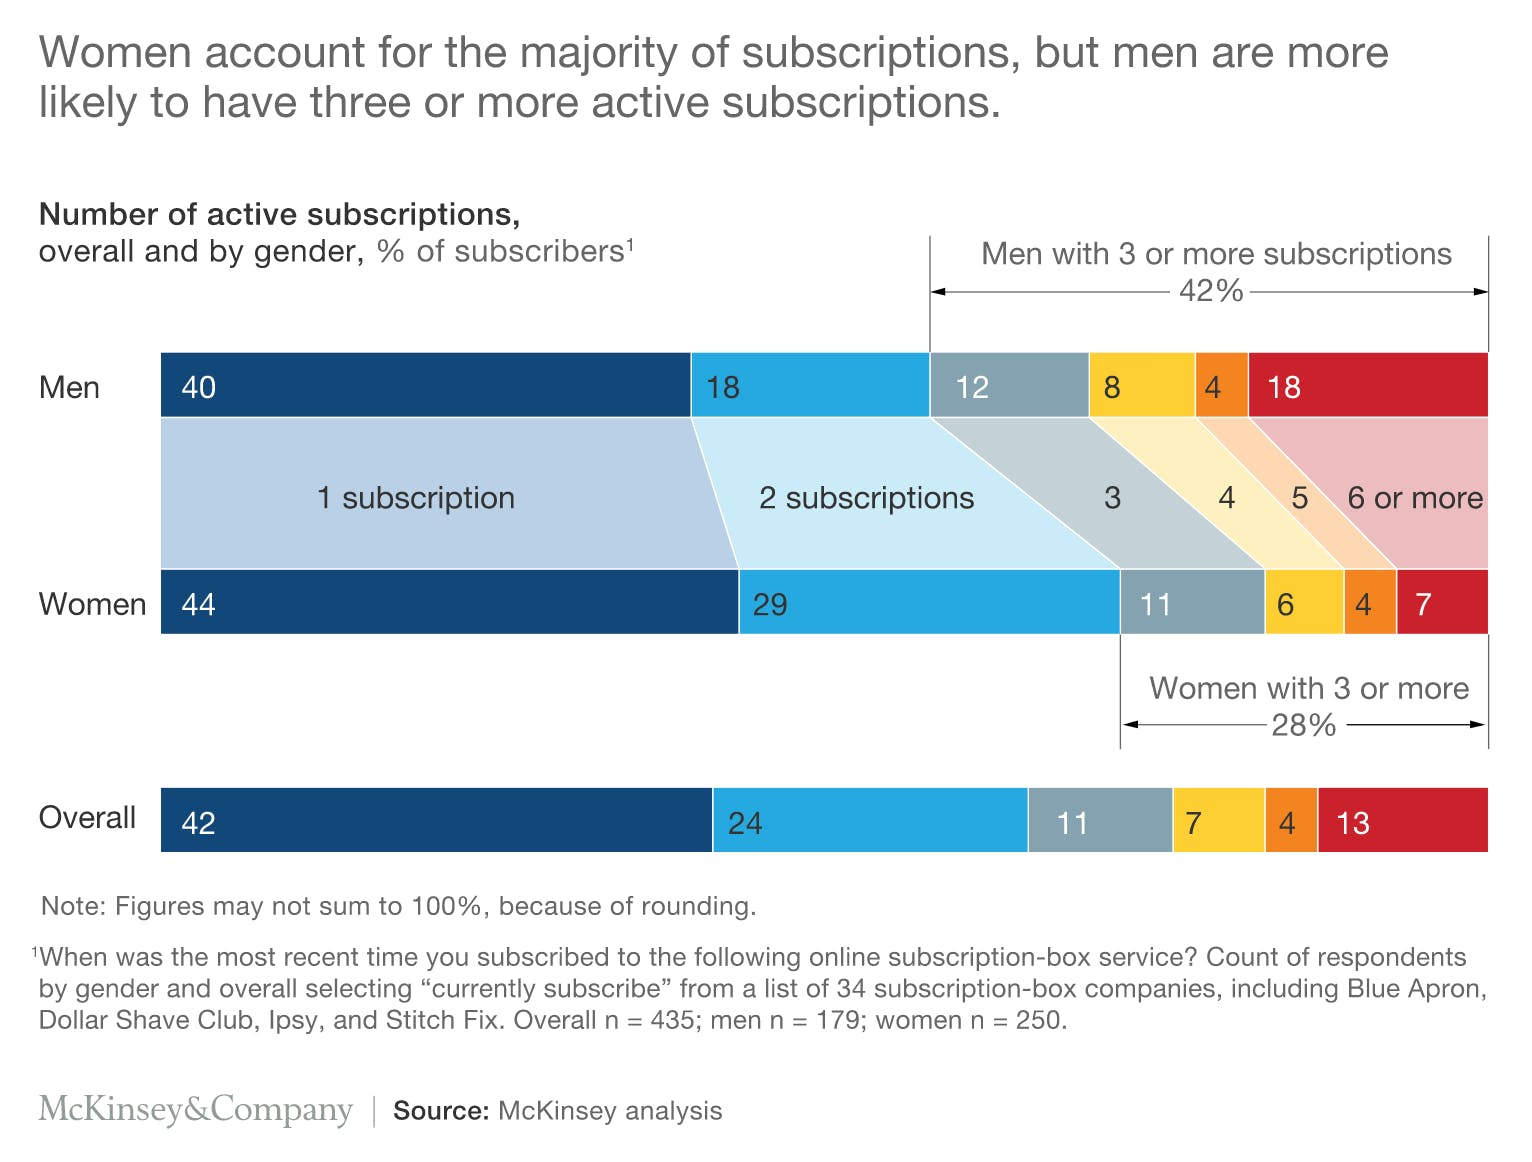 McKinsey number of active subscriptions